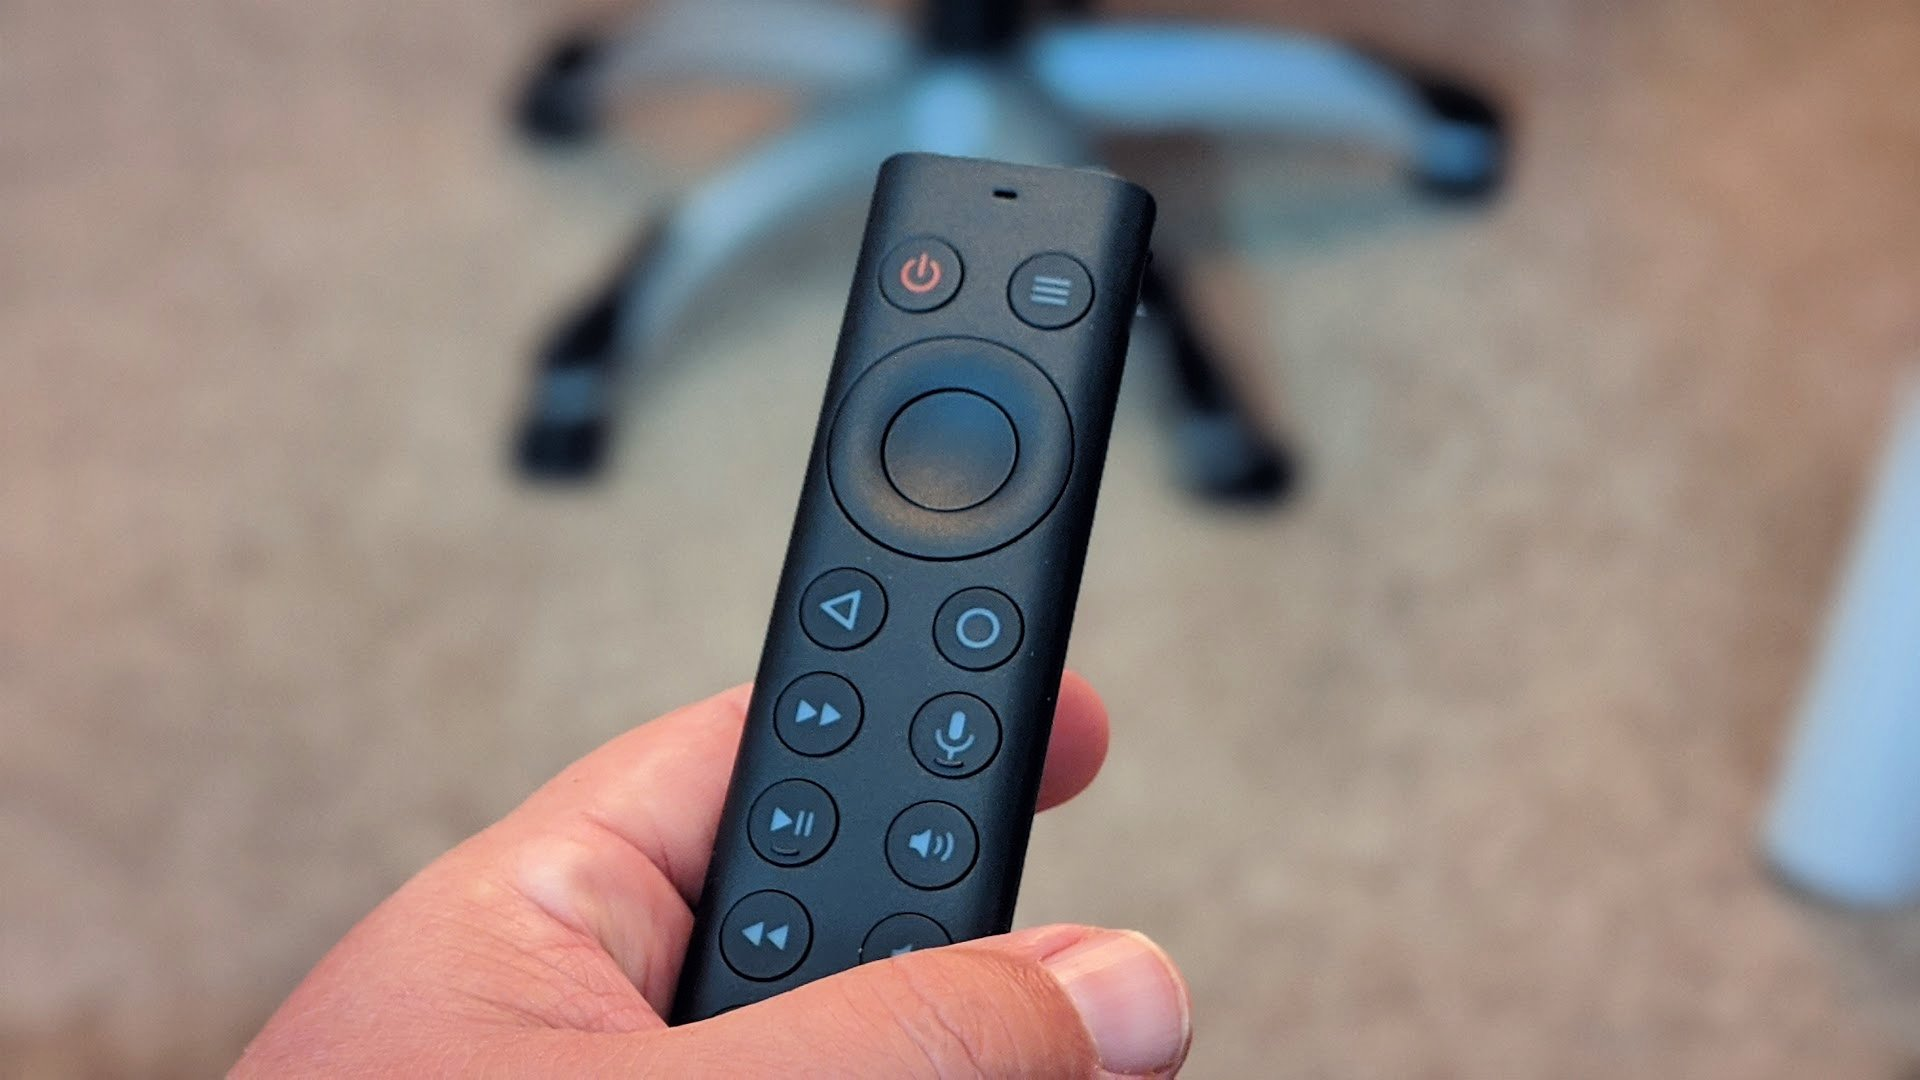 NVIDIA goes in a different direction for the new remote